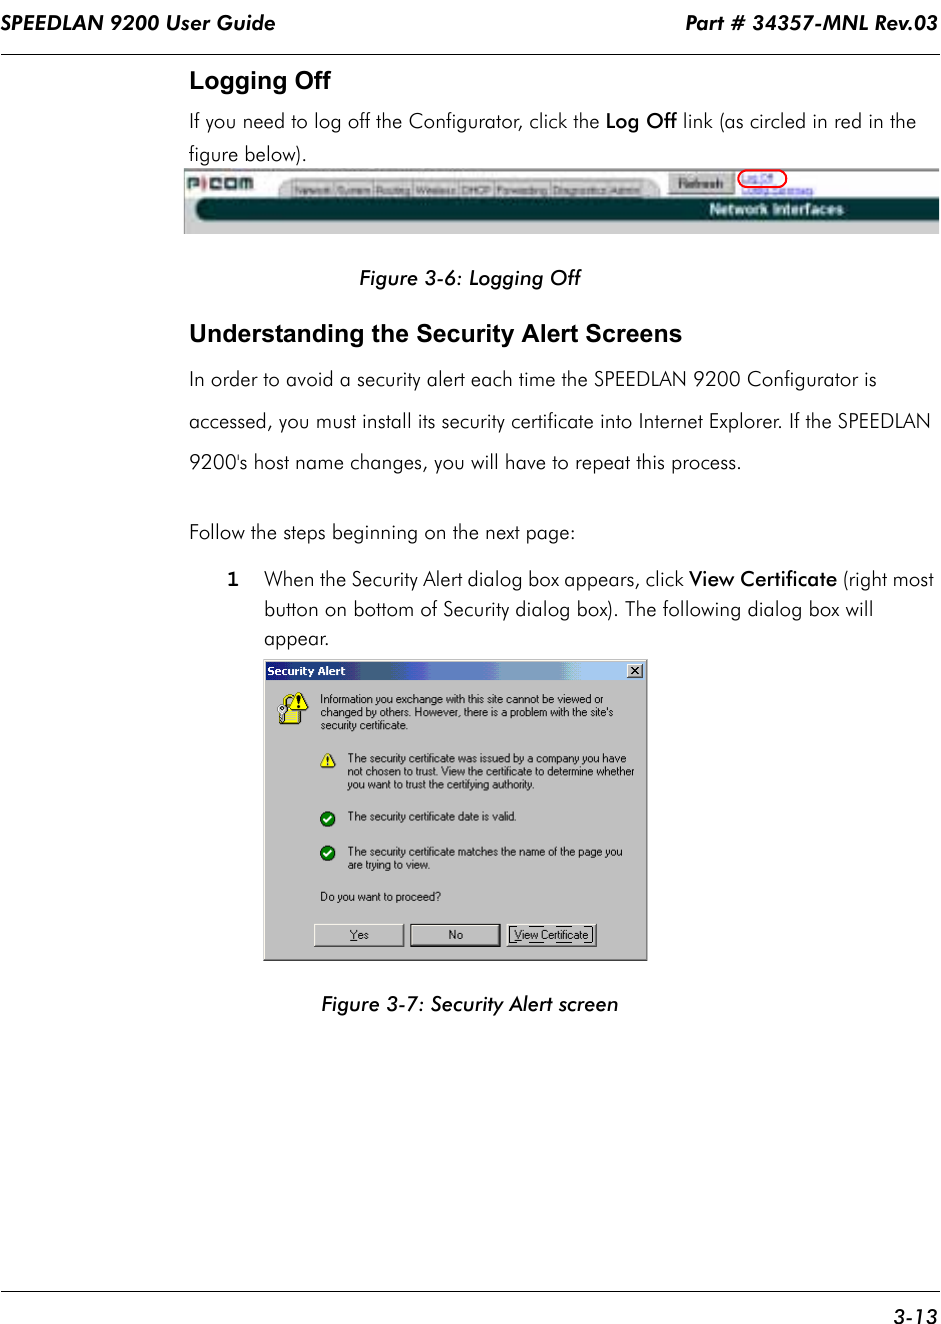 SPEEDLAN 9200 User Guide                                                                    Part # 34357-MNL Rev.03      3-13                                                                                                                                                              Logging OffIf you need to log off the Configurator, click the Log Off link (as circled in red in the figure below).Figure 3-6: Logging OffUnderstanding the Security Alert ScreensIn order to avoid a security alert each time the SPEEDLAN 9200 Configurator is accessed, you must install its security certificate into Internet Explorer. If the SPEEDLAN 9200's host name changes, you will have to repeat this process. Follow the steps beginning on the next page:1When the Security Alert dialog box appears, click View Certificate (right most button on bottom of Security dialog box). The following dialog box will appear.Figure 3-7: Security Alert screen